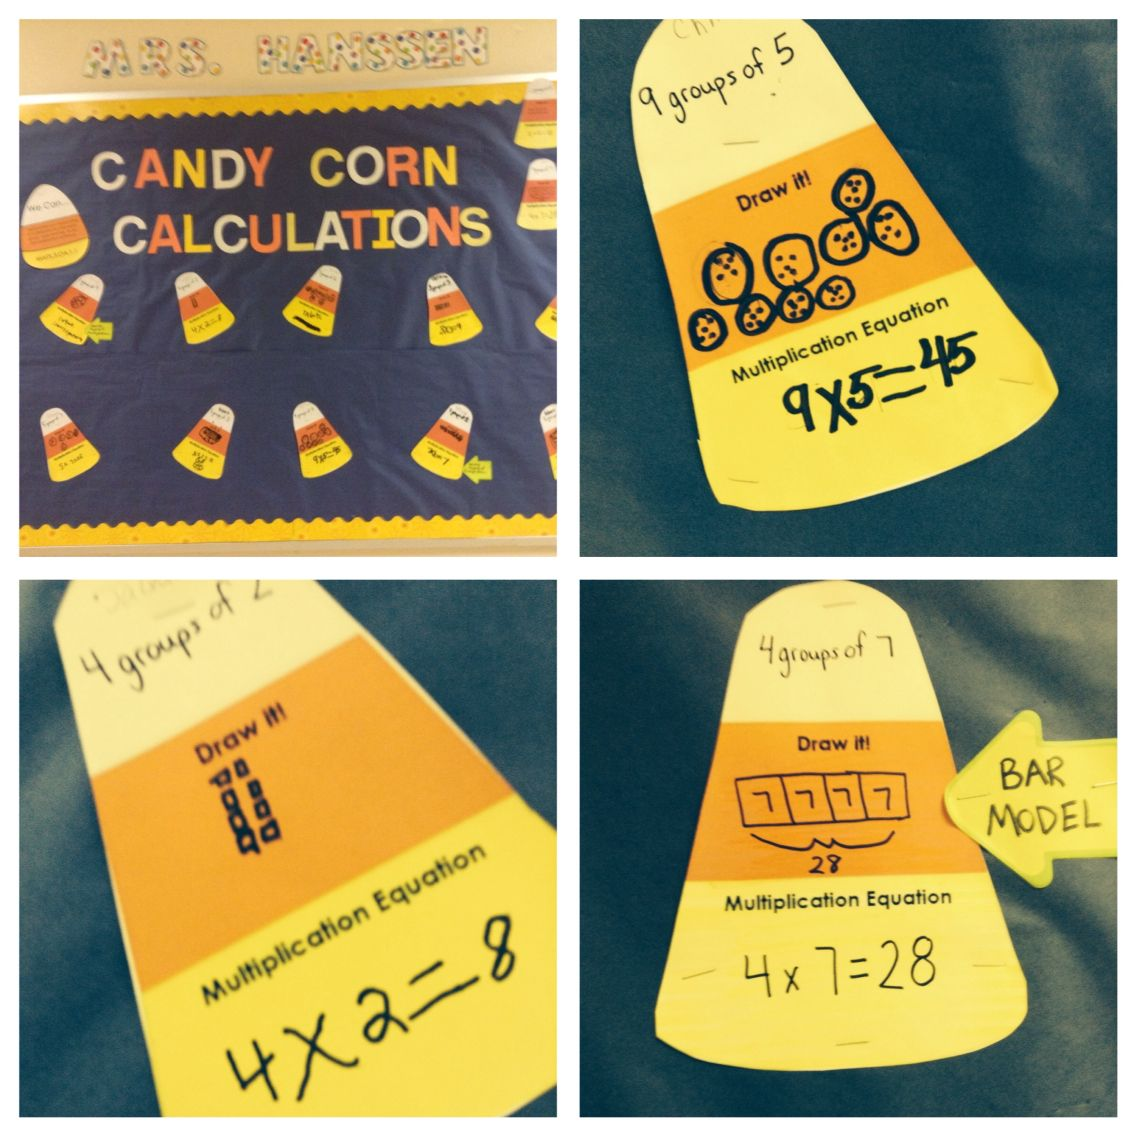 Candy Corn Calculations With Multiplication Models Use As